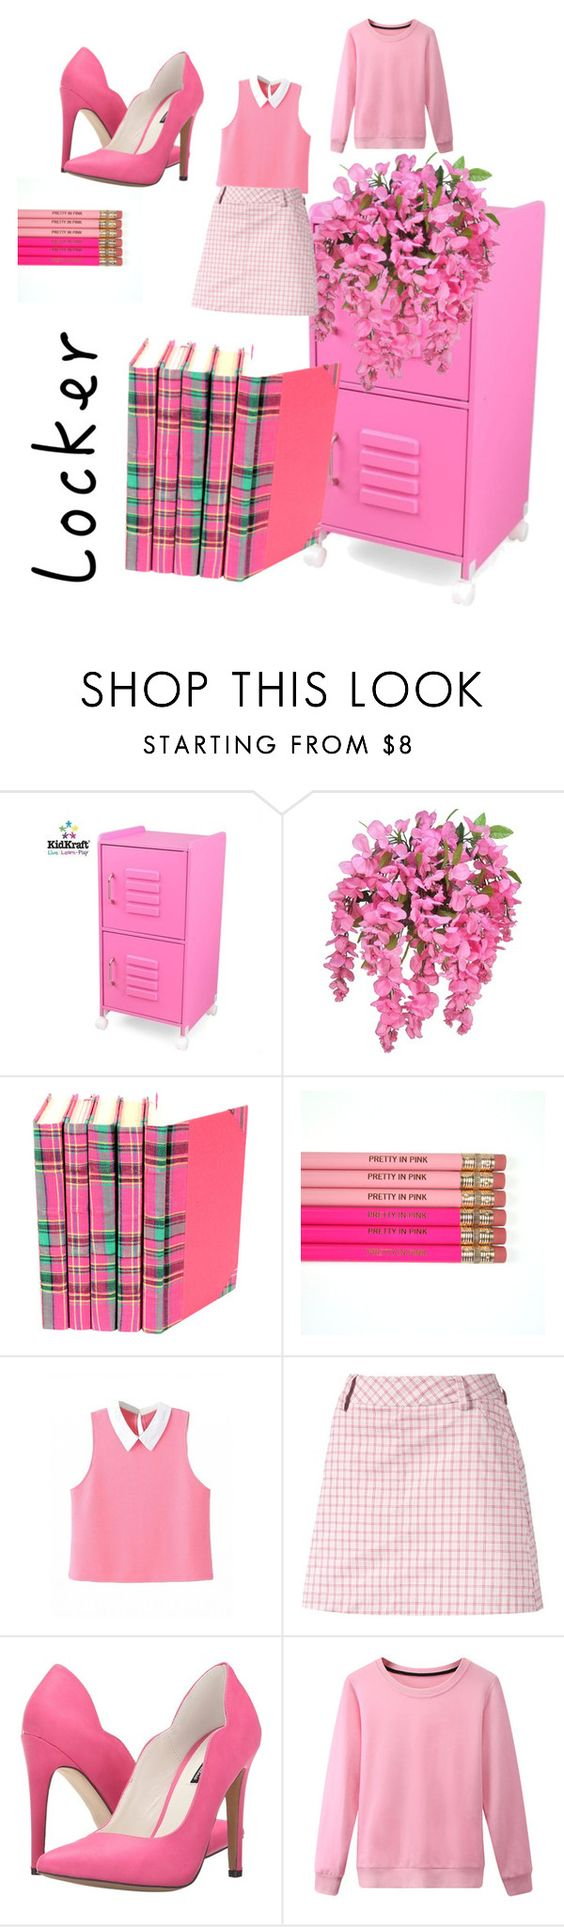 """pink 2 think"" by angelmaywinfield-1 ❤ liked on Polyvore featuring interior, interiors, interior design, home, home decor, interior decorating, KidKraft, Puma, Michael Antonio and mylocker"